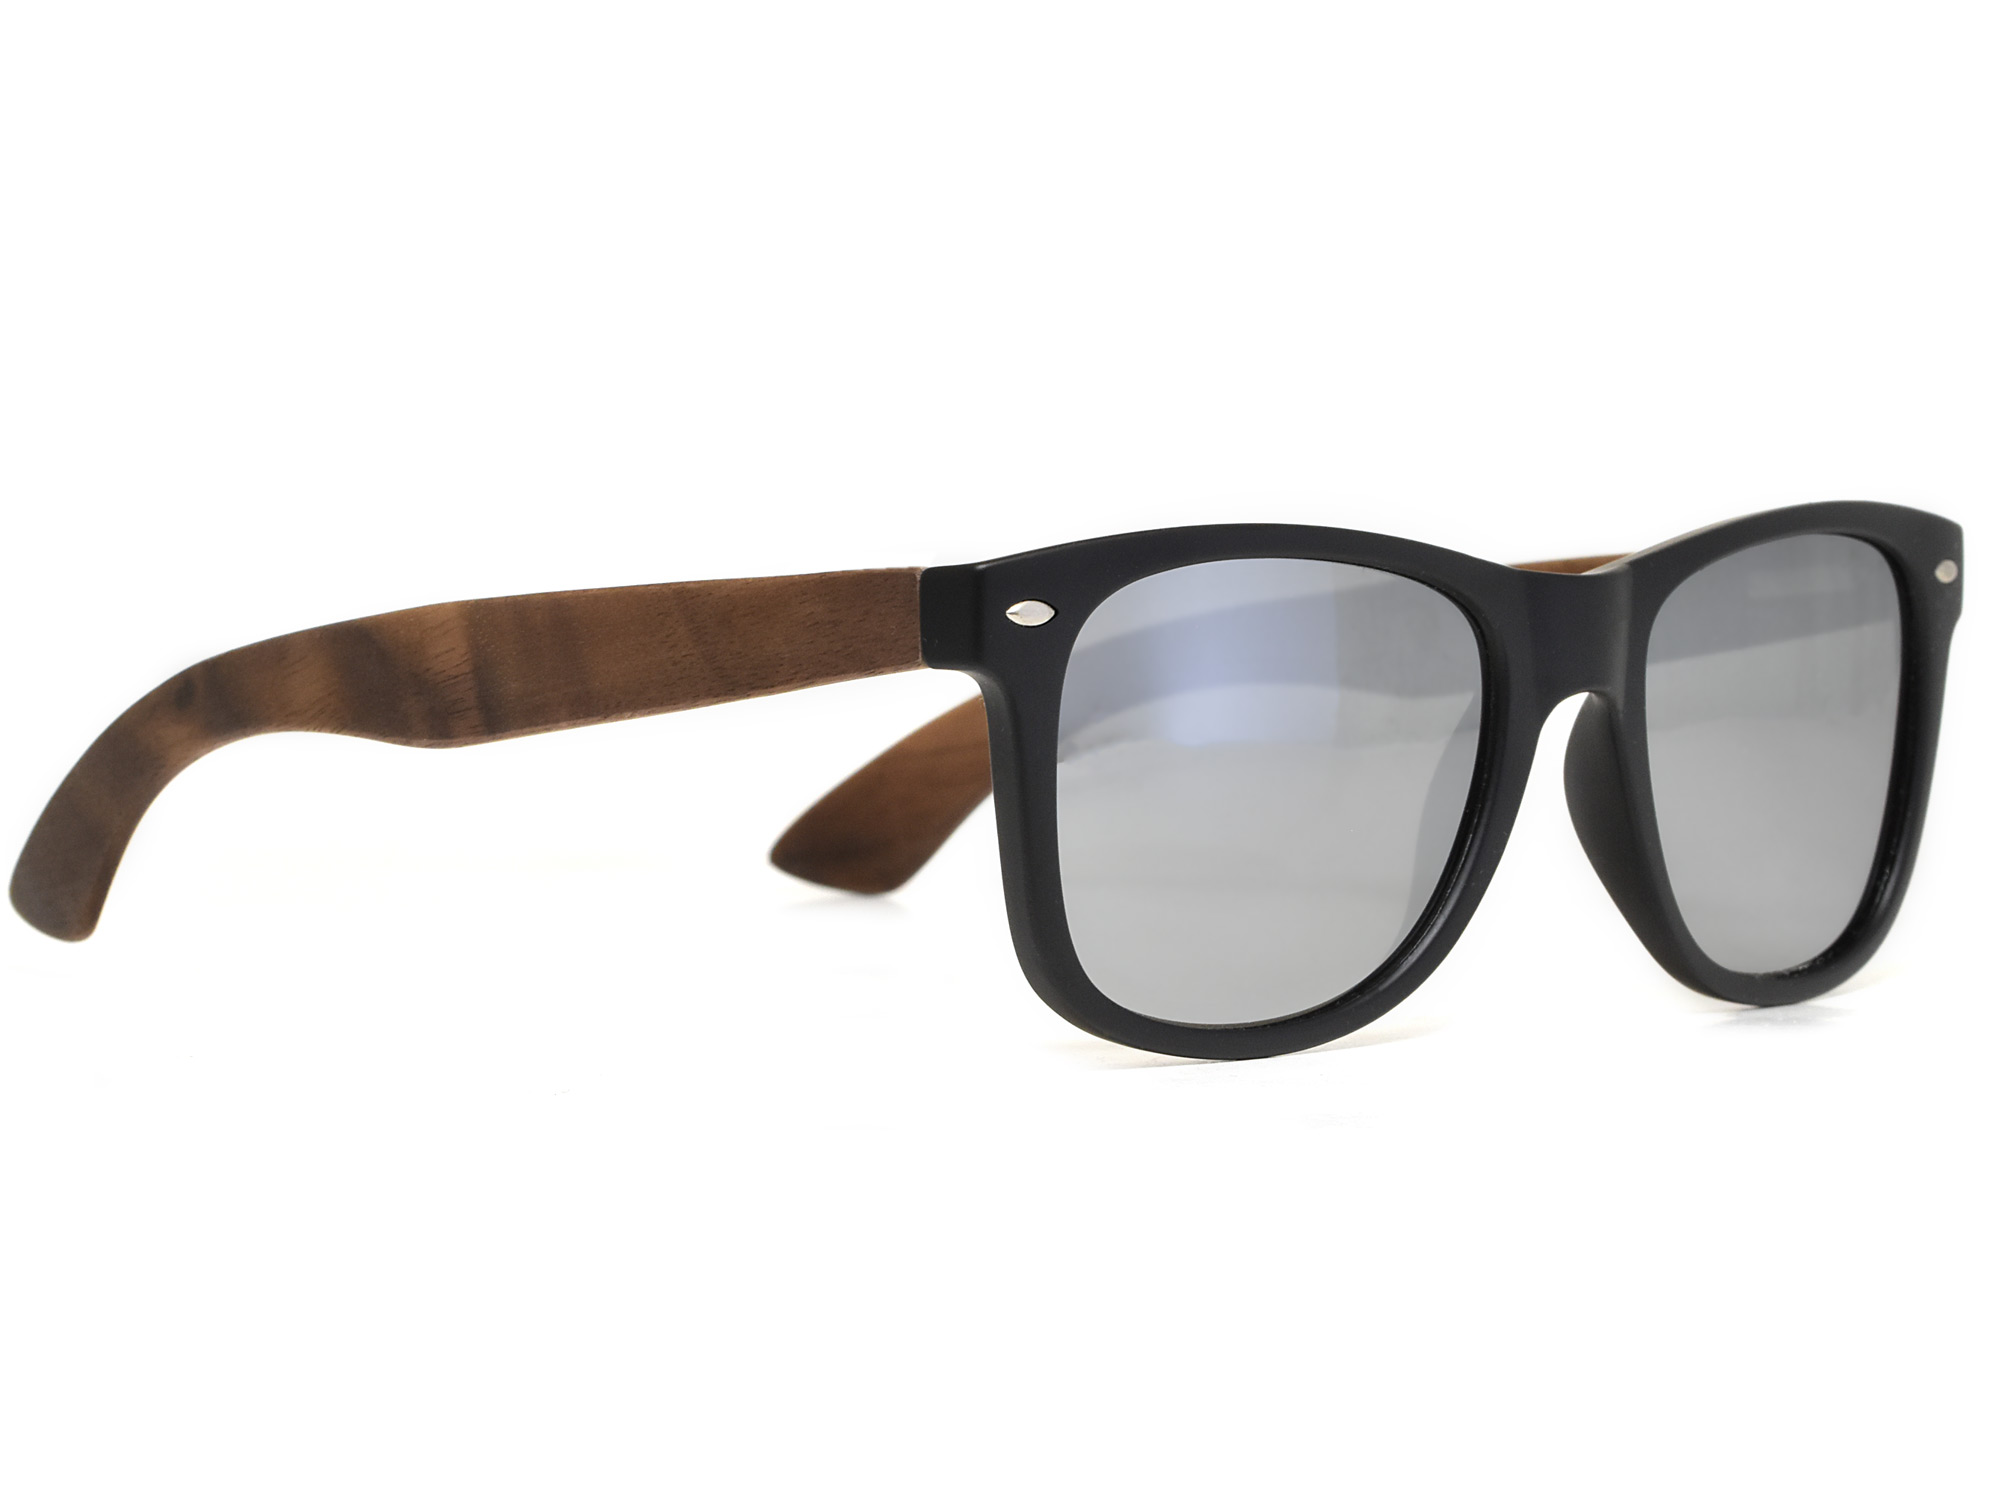 Walnut wood sunglasses with silver mirrored lenses right